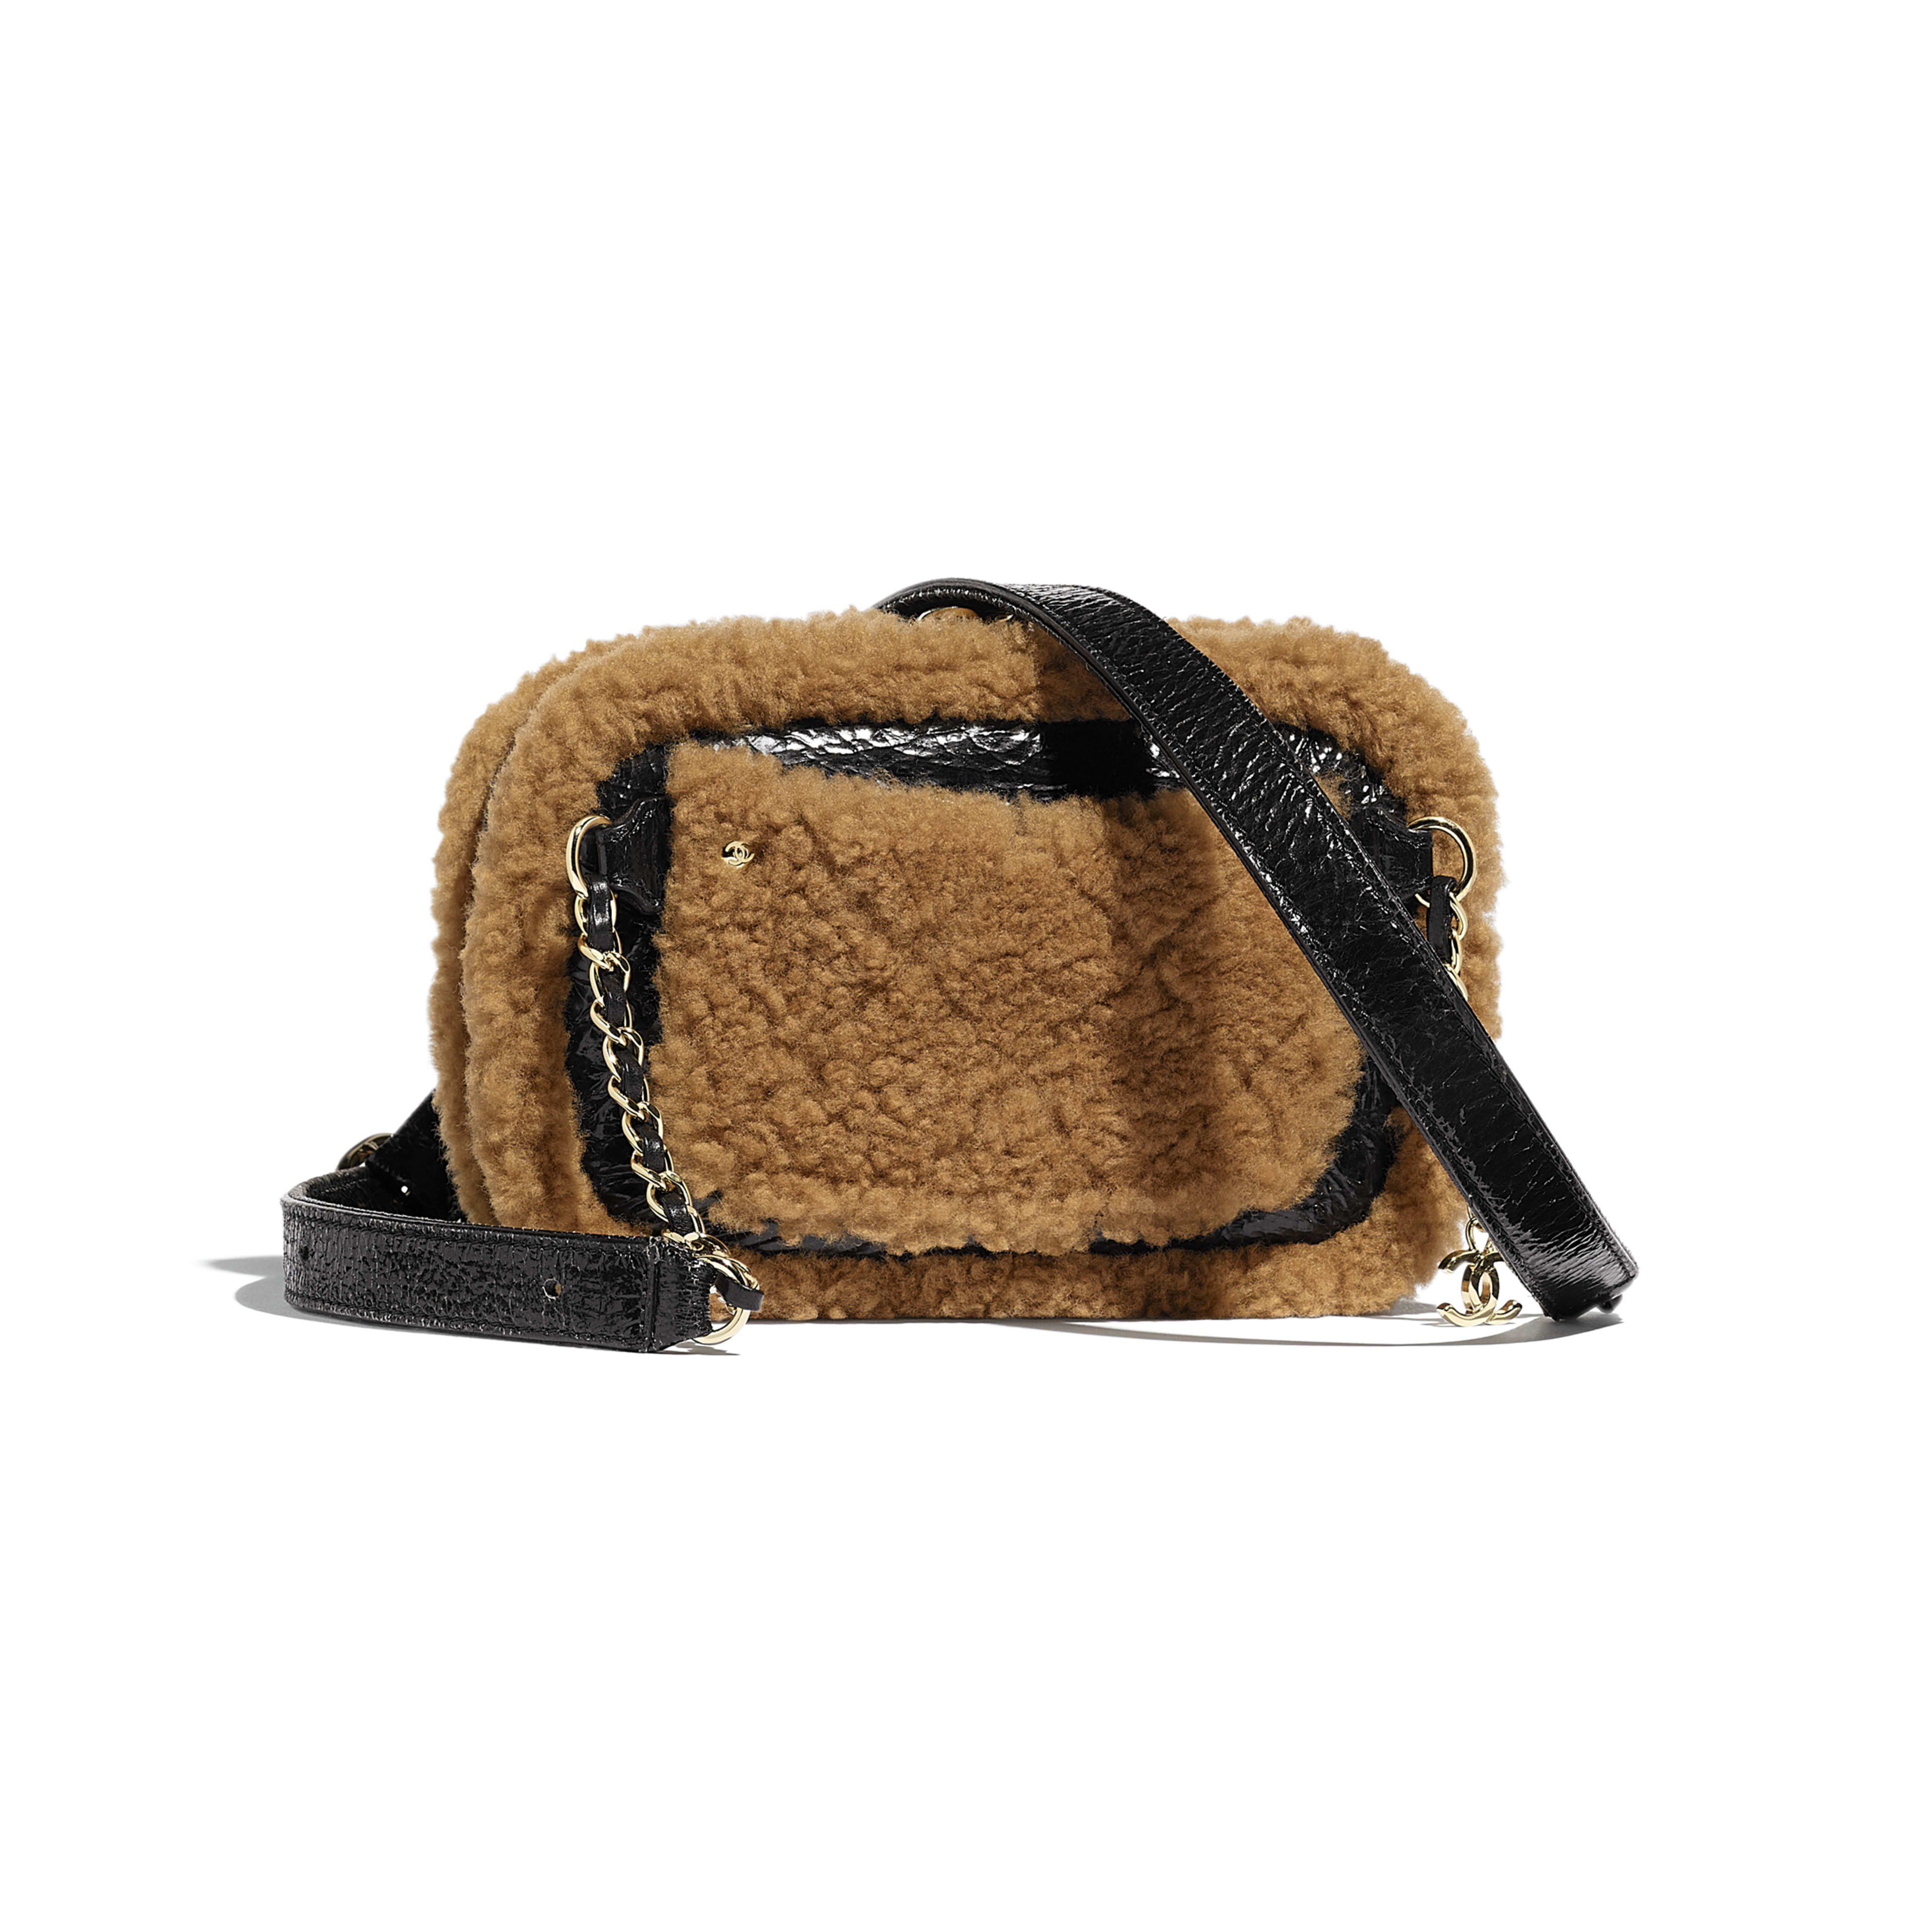 Waist Bag - Black & Brown - Shiny Crumpled Sheepskin, Shearling Sheepskin & Gold-Tone Metal - Alternative view - see full sized version